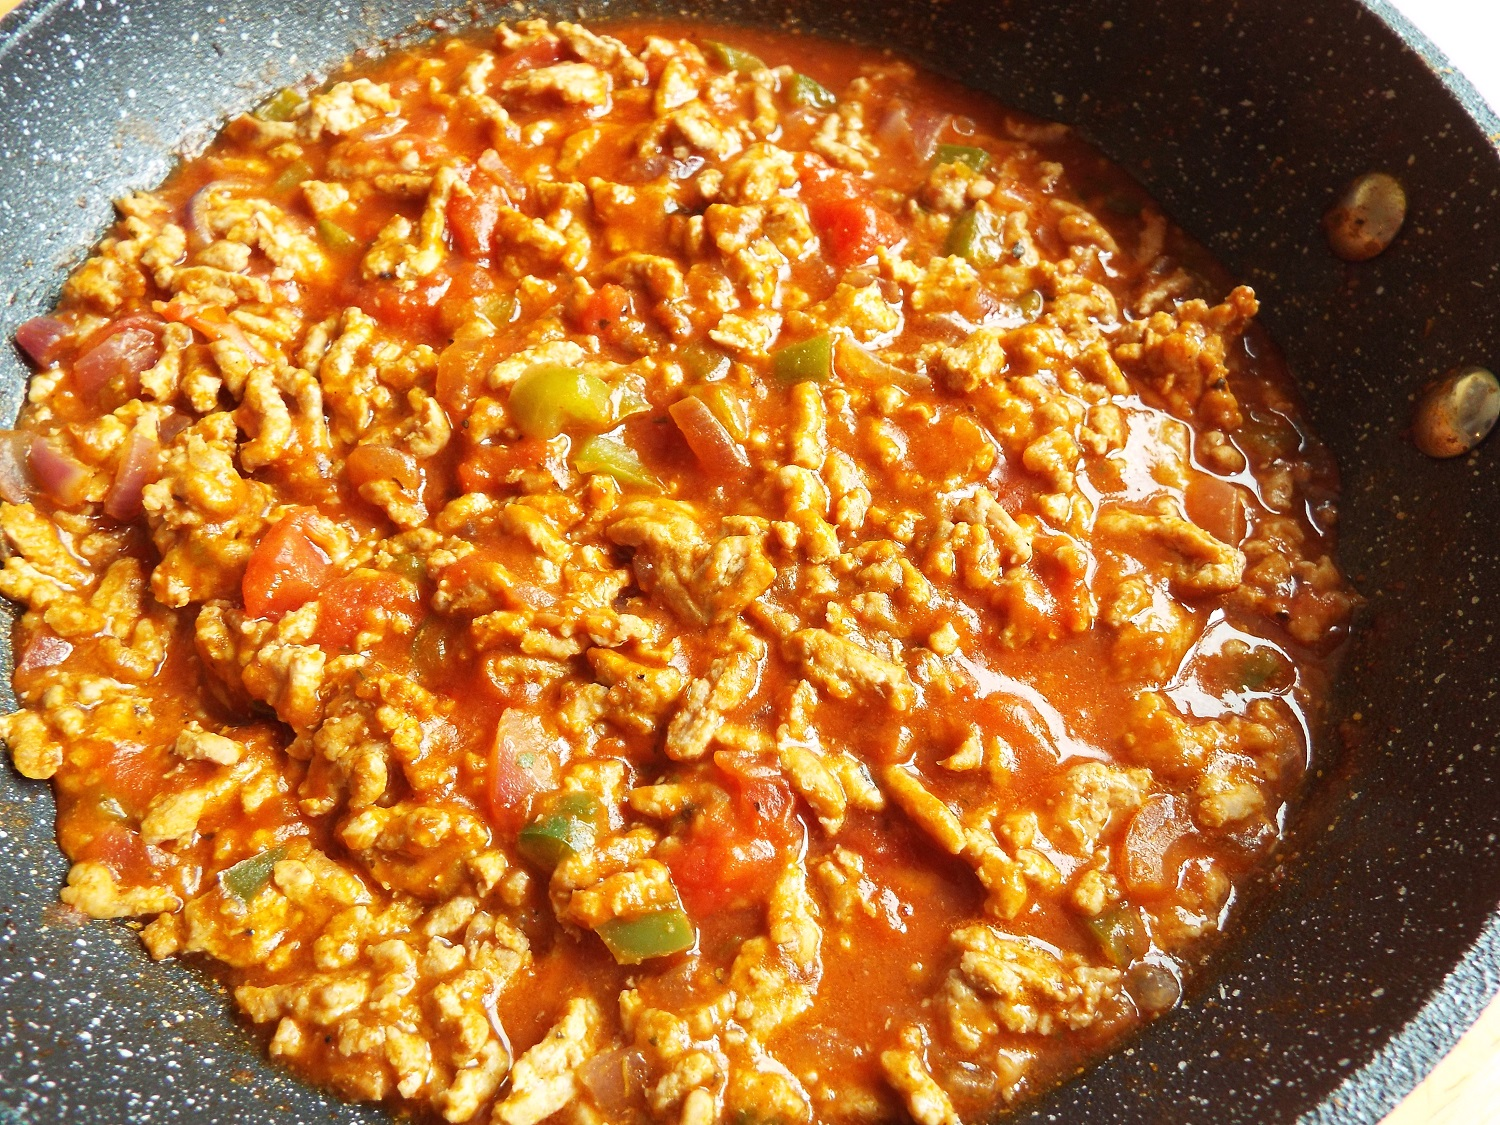 Vegan Bolognese - I used a supermarket soya 'mince' - soak for a minute in boiling water before use. I added it to fried onions, grated carrot, chopped peppers and mushrooms, and stirred in some garlic granules,mixed herbs and seasoning.Finally I tipped in some canned tomatoes and simmered. Ideas about how to use it (cheaply) are below.You can use lentils instead of soya mince (which are also gluten-free).Vegan;vegetarian;health-aware